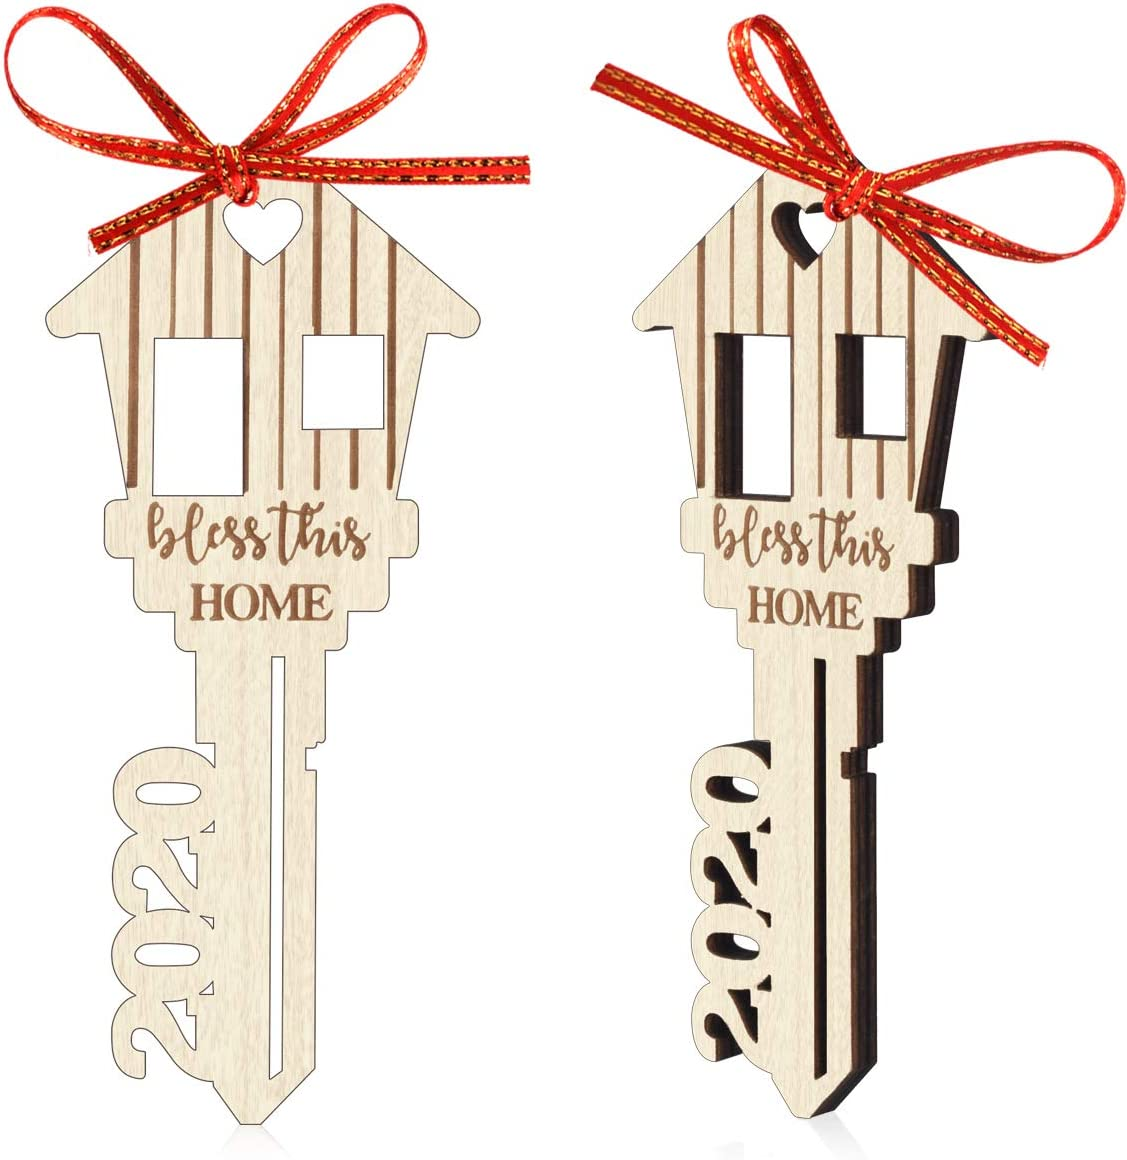 Christmas Tree Ornament Keepsake 2020 Bless This Home Wood Hanging Decoration New Home Housewarming Gift Pack of 2